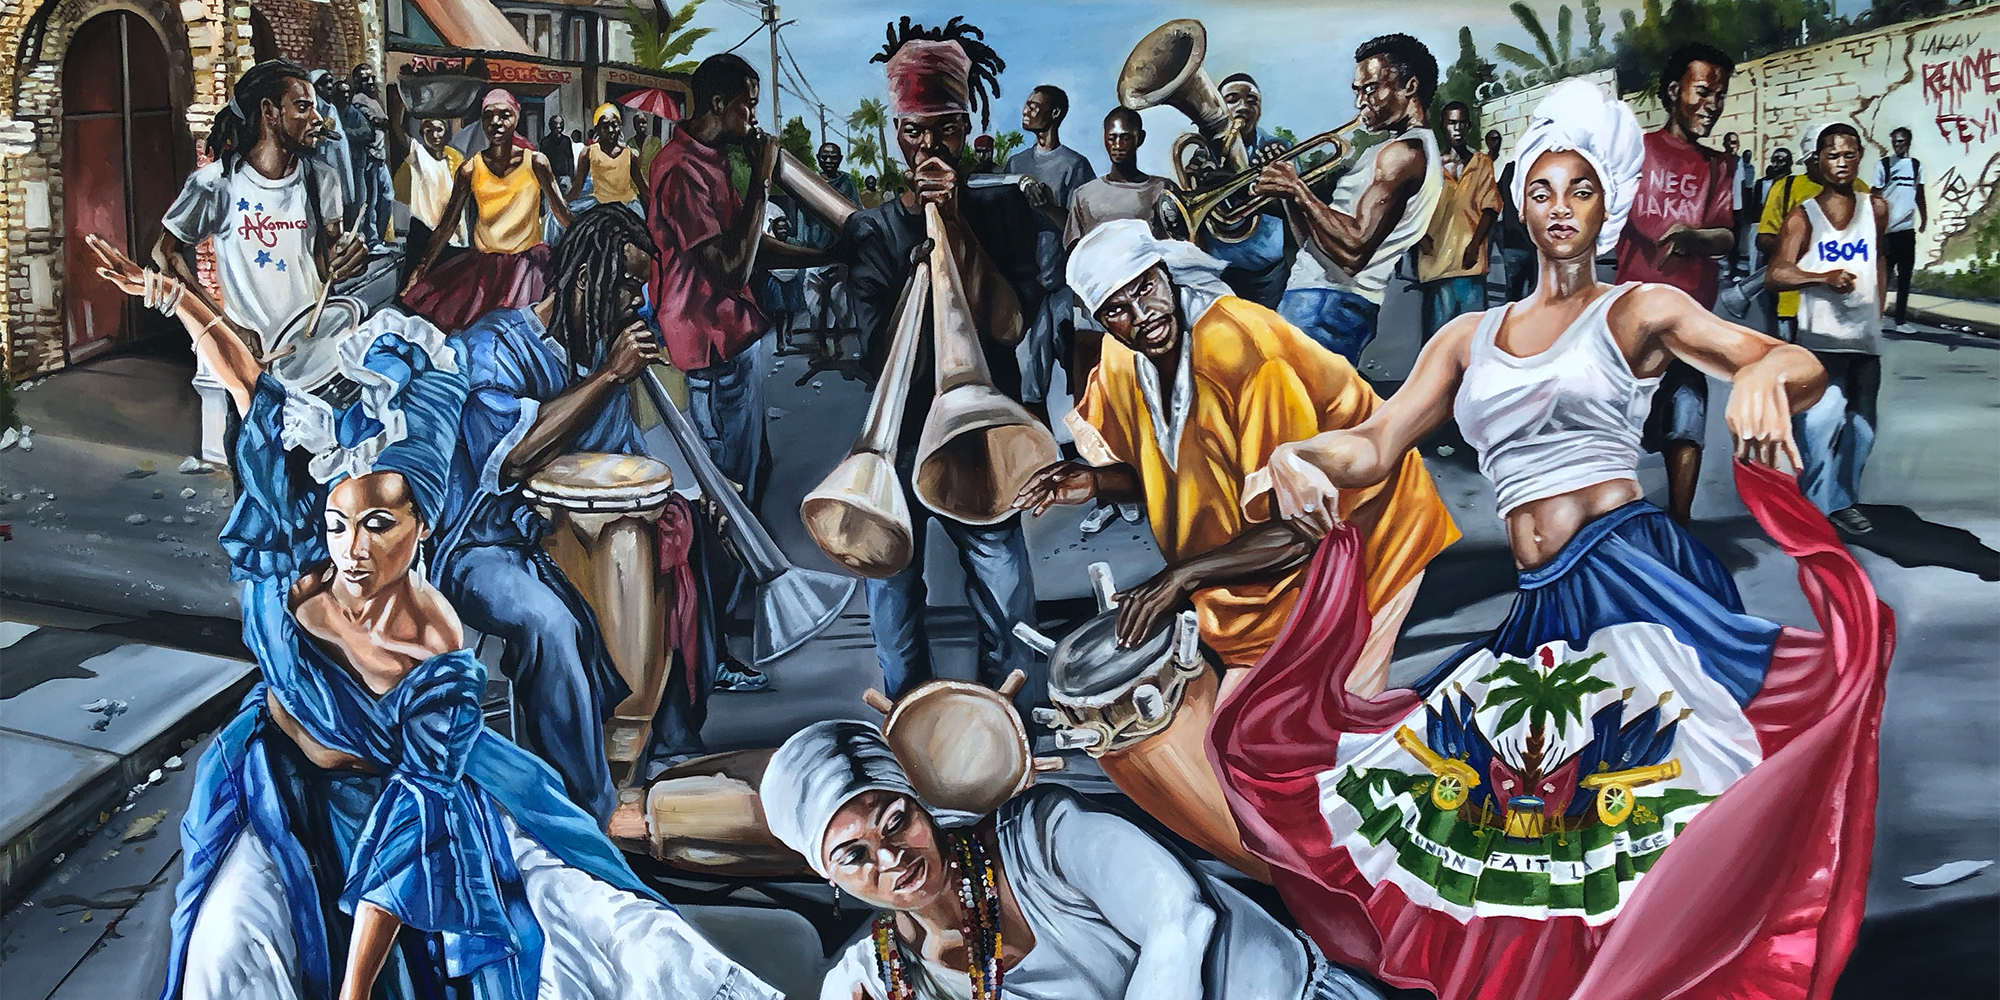 Parade in the Streets Painting - African Heritage Art in Roselle, NJ, by AkomicsArt LLC